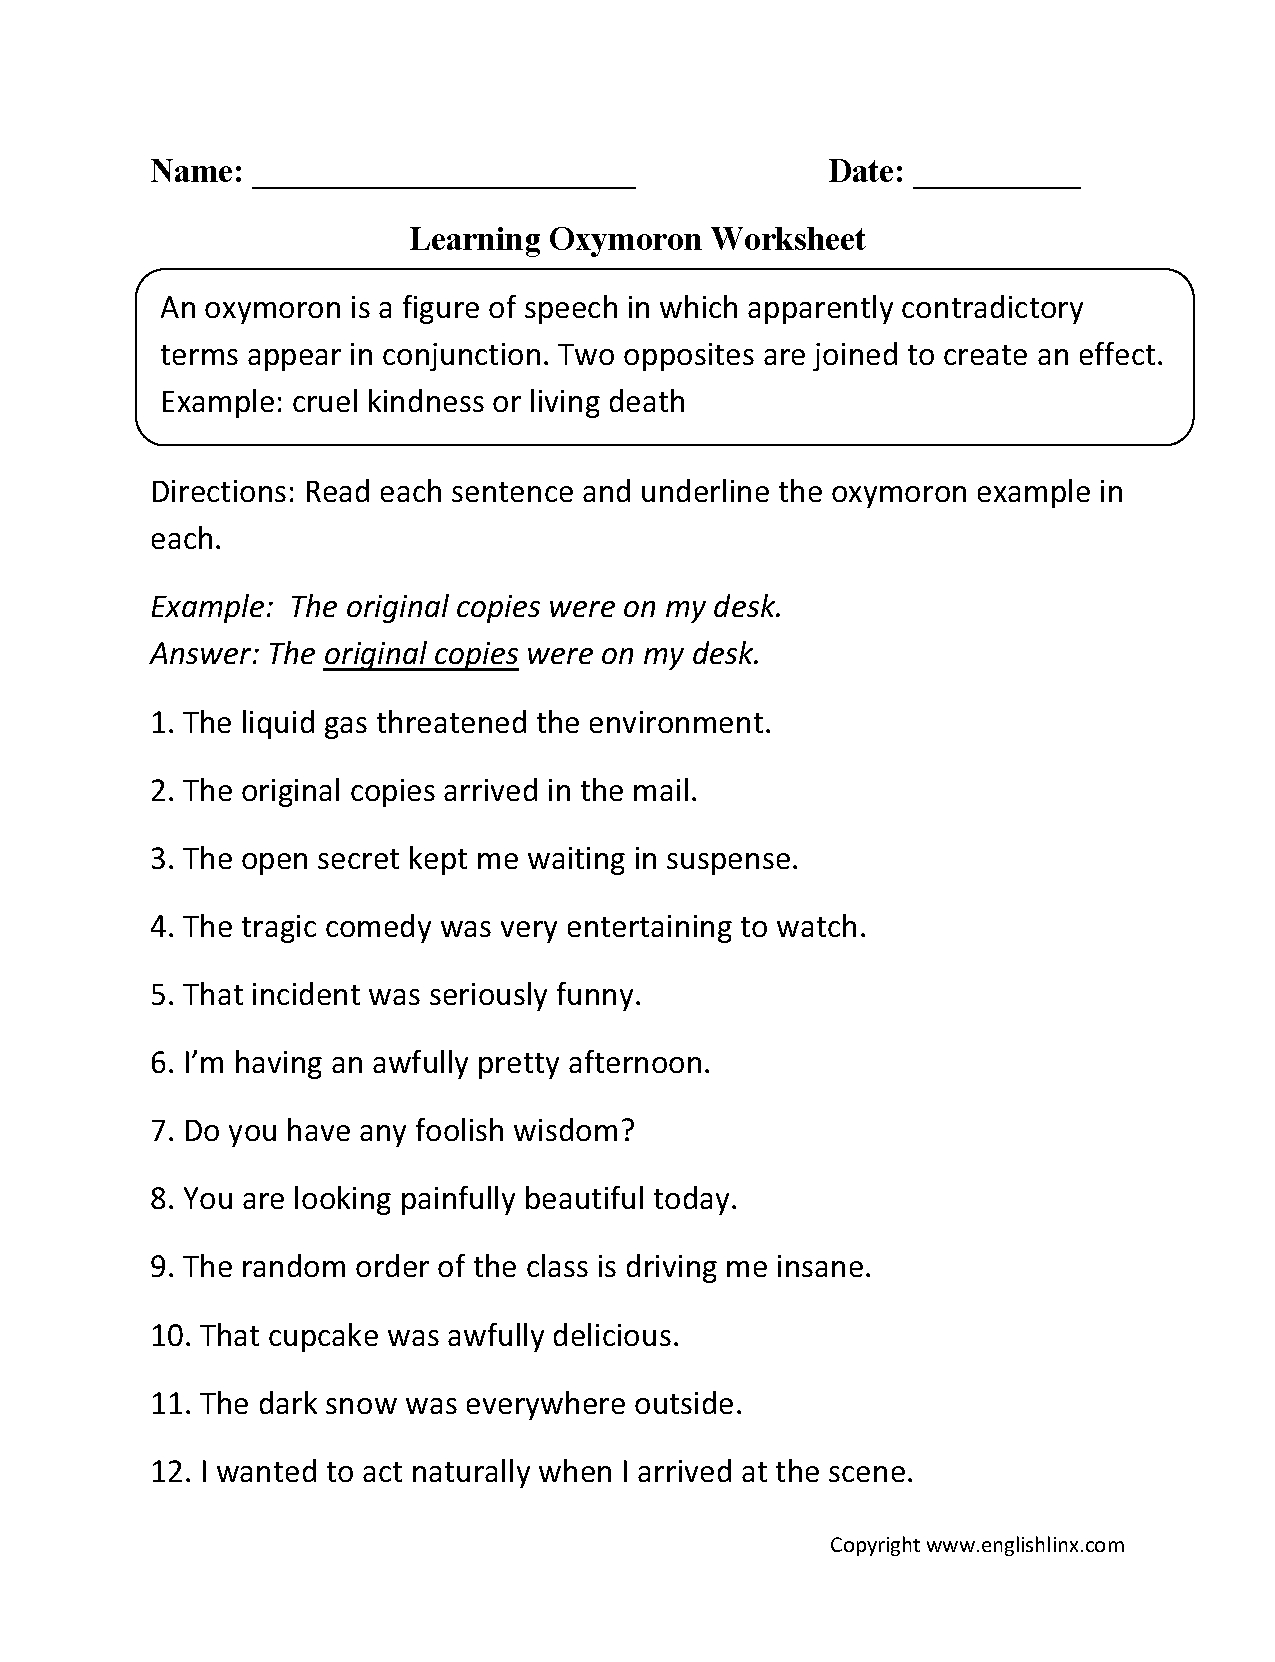 Oxymoron Figurative Language Worksheets | Englishlinx Board | Free Printable Literary Elements Worksheets